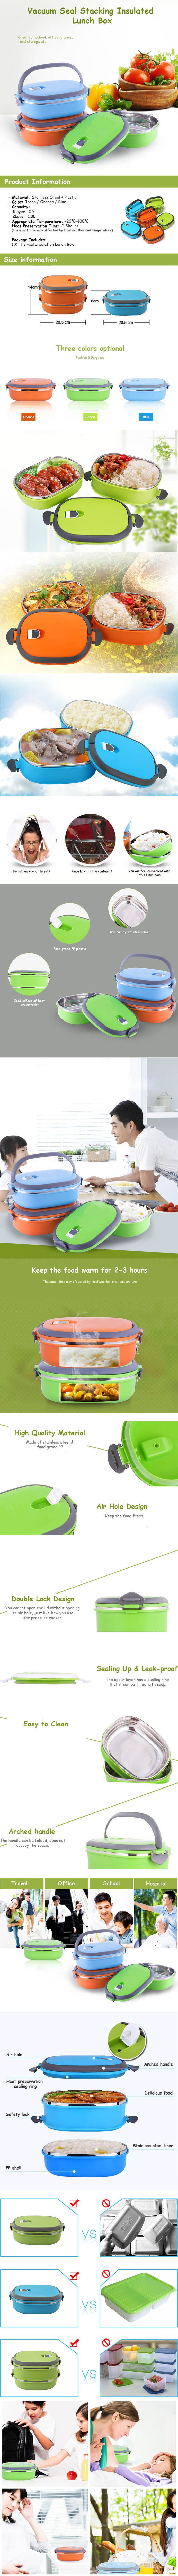 Vacuum Seal Stacking Insulated Lunch Box Stainless Steel Thermal Insulation Bento Box Dual Handle Container - Newchic